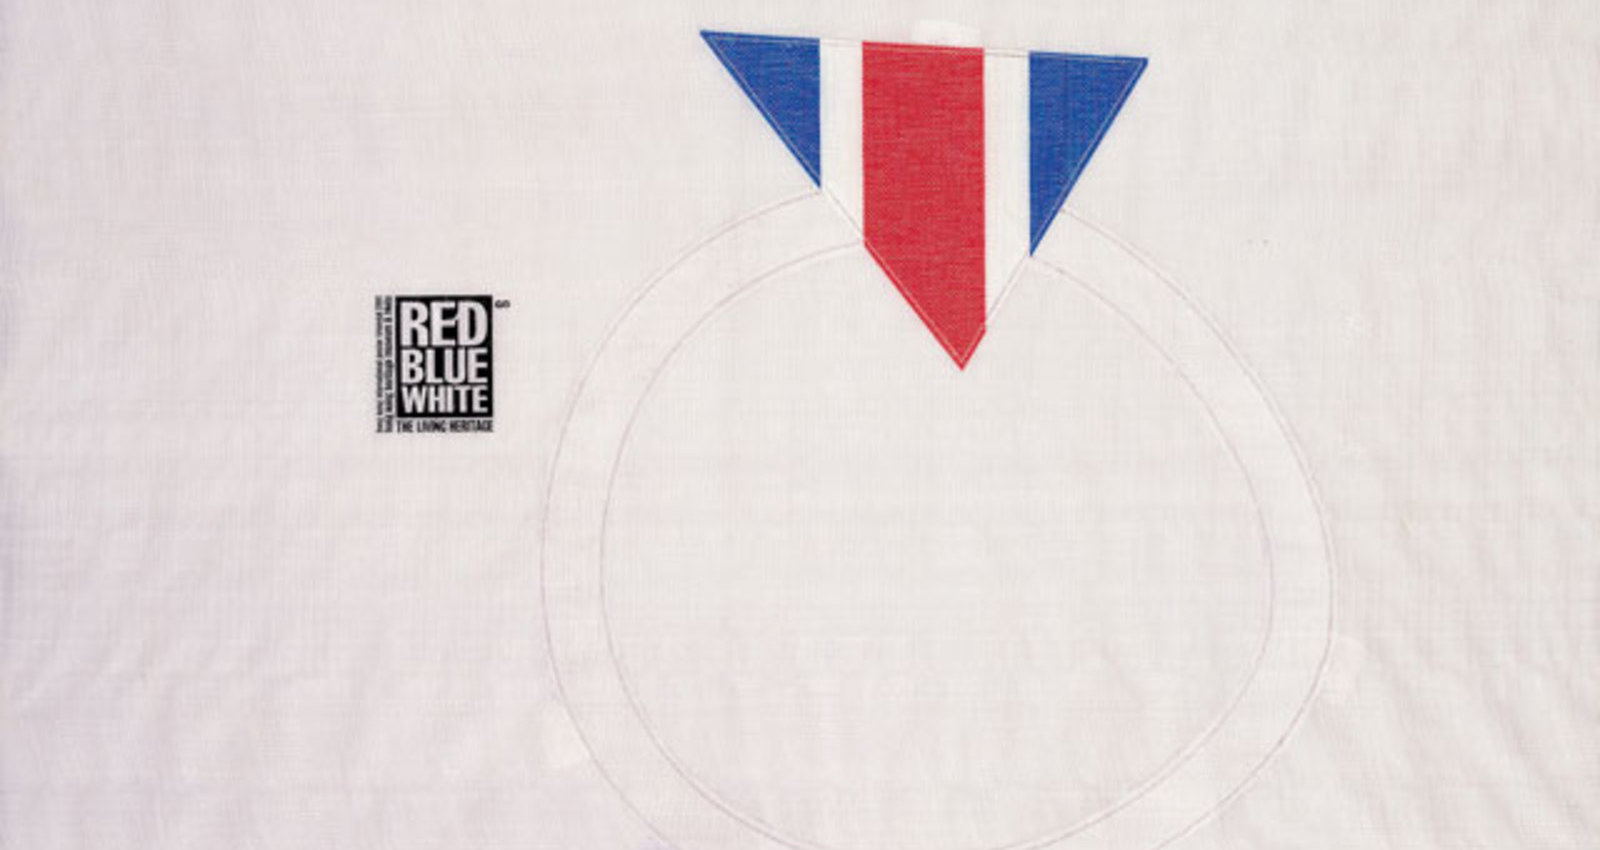 [red  white  blue]